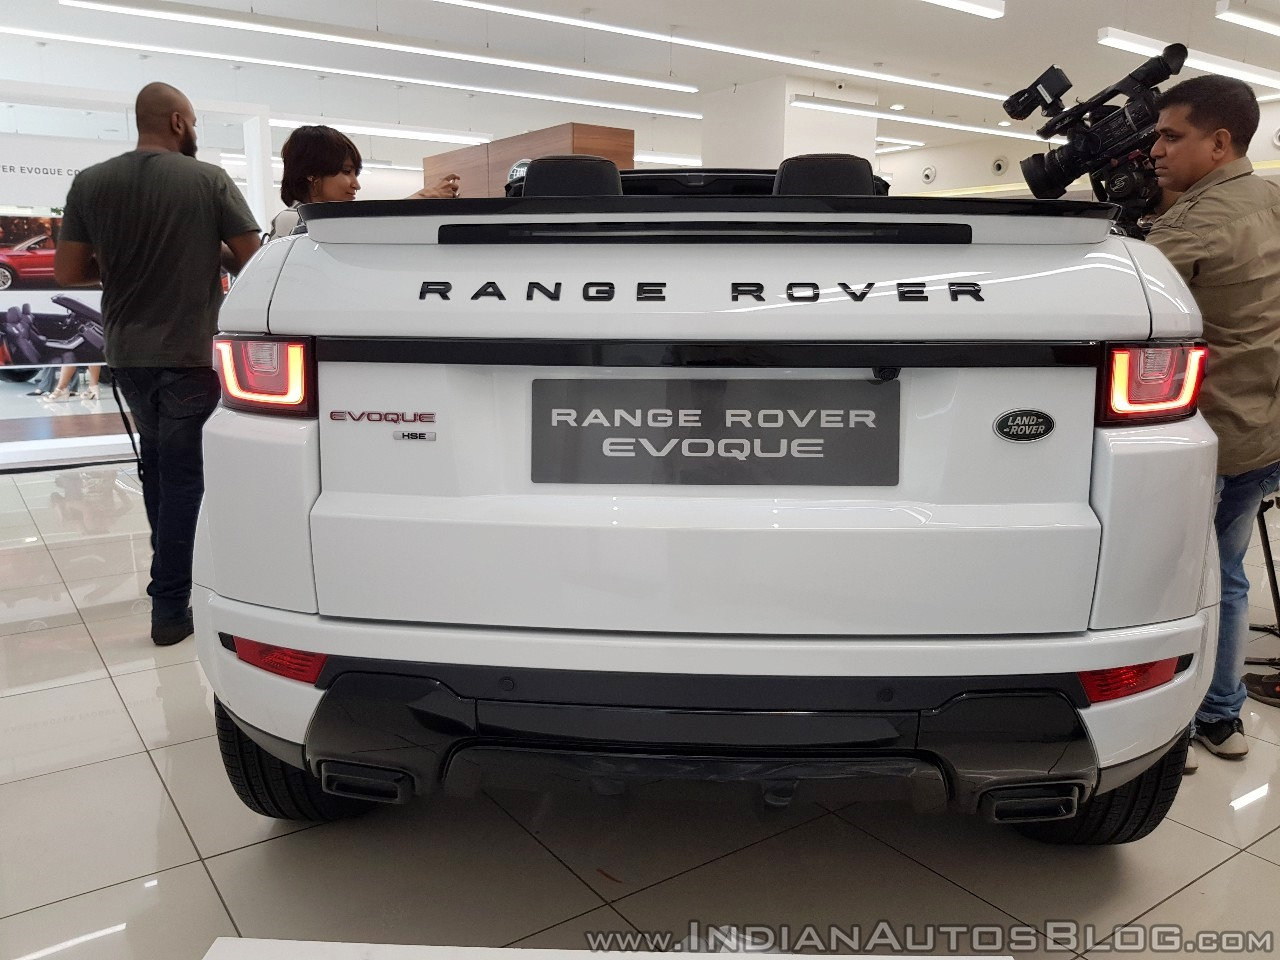 Range Rover Evoque convertible rear